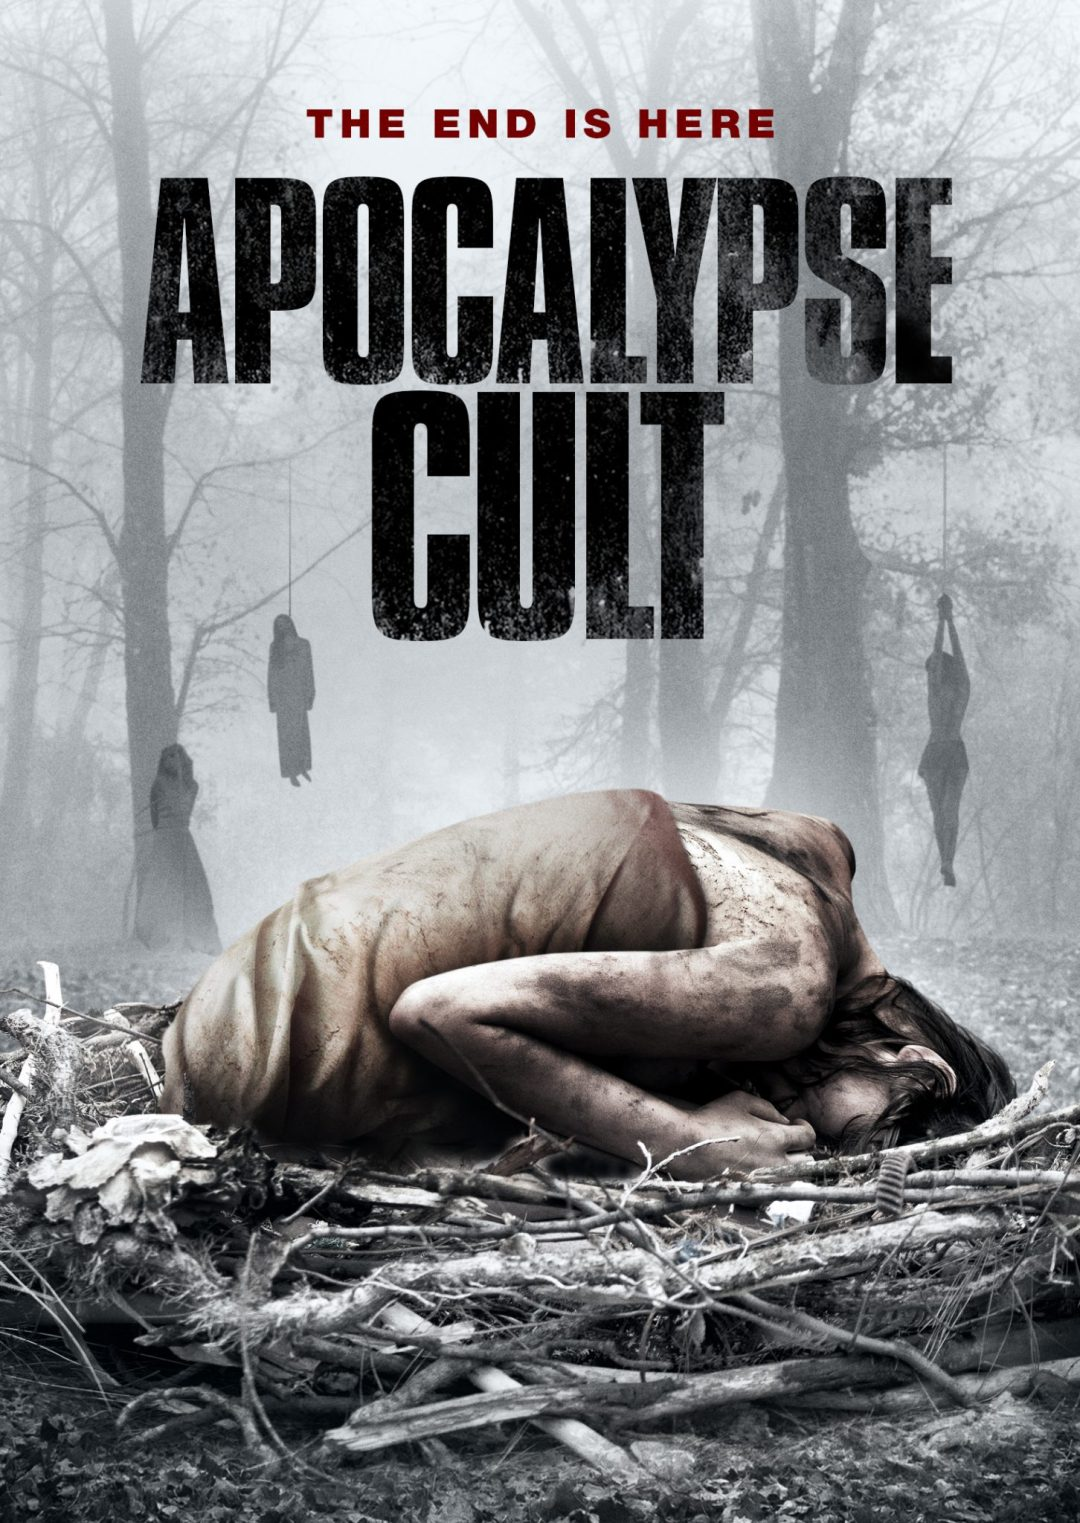 The 'Apocalypse Cult' Proves Their Devotion on DVD and VOD October 31